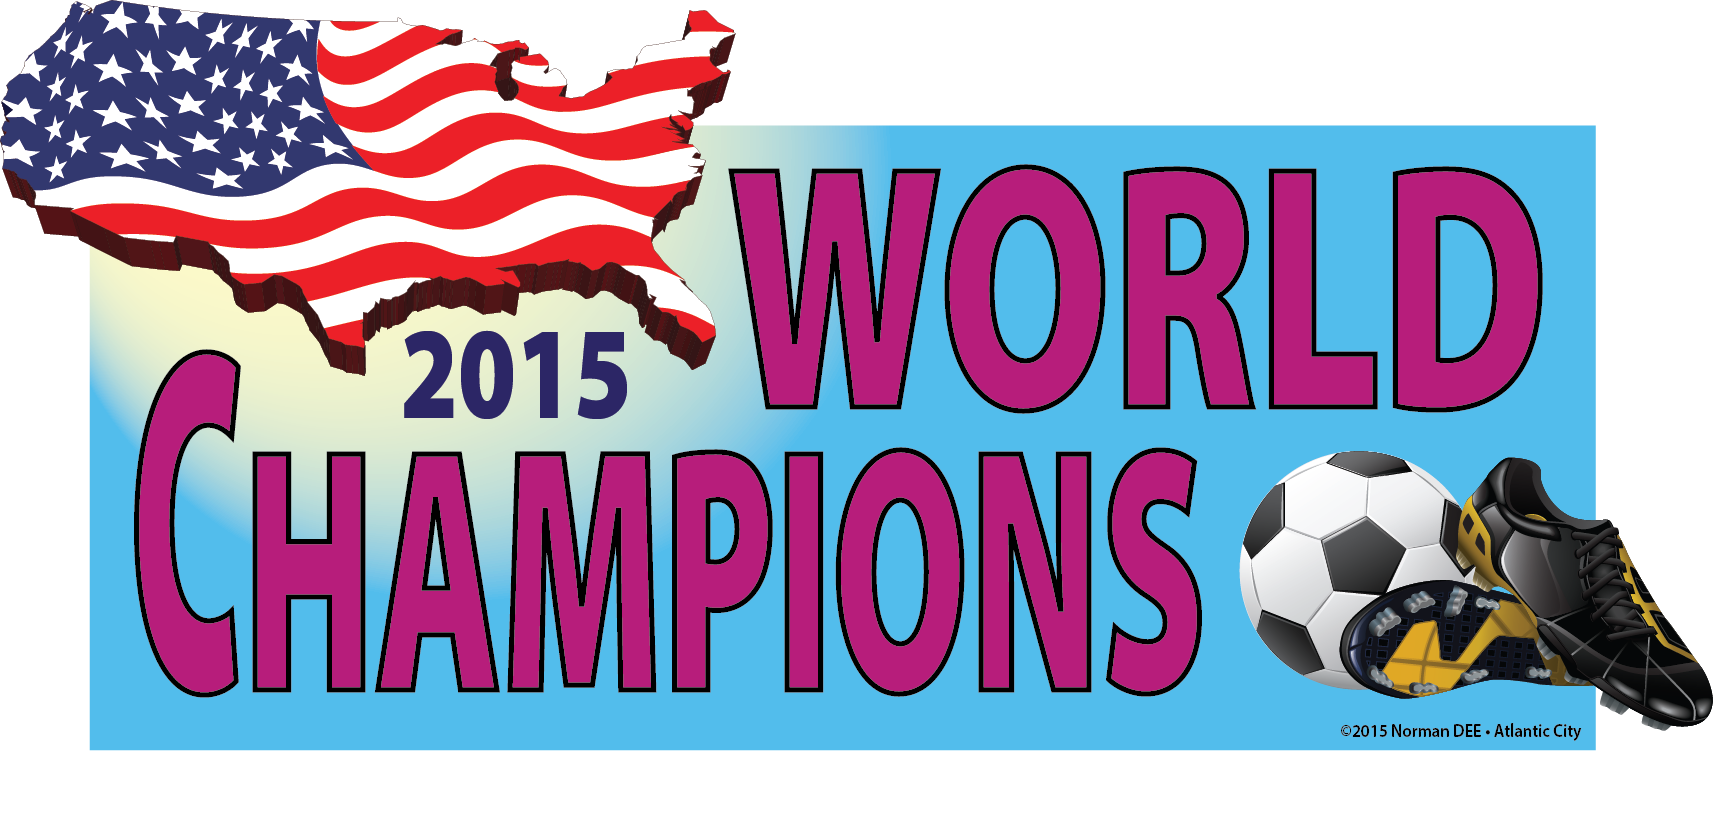 a DEEcal that reads '2015 World Champions' as the United States won the international soccer championship